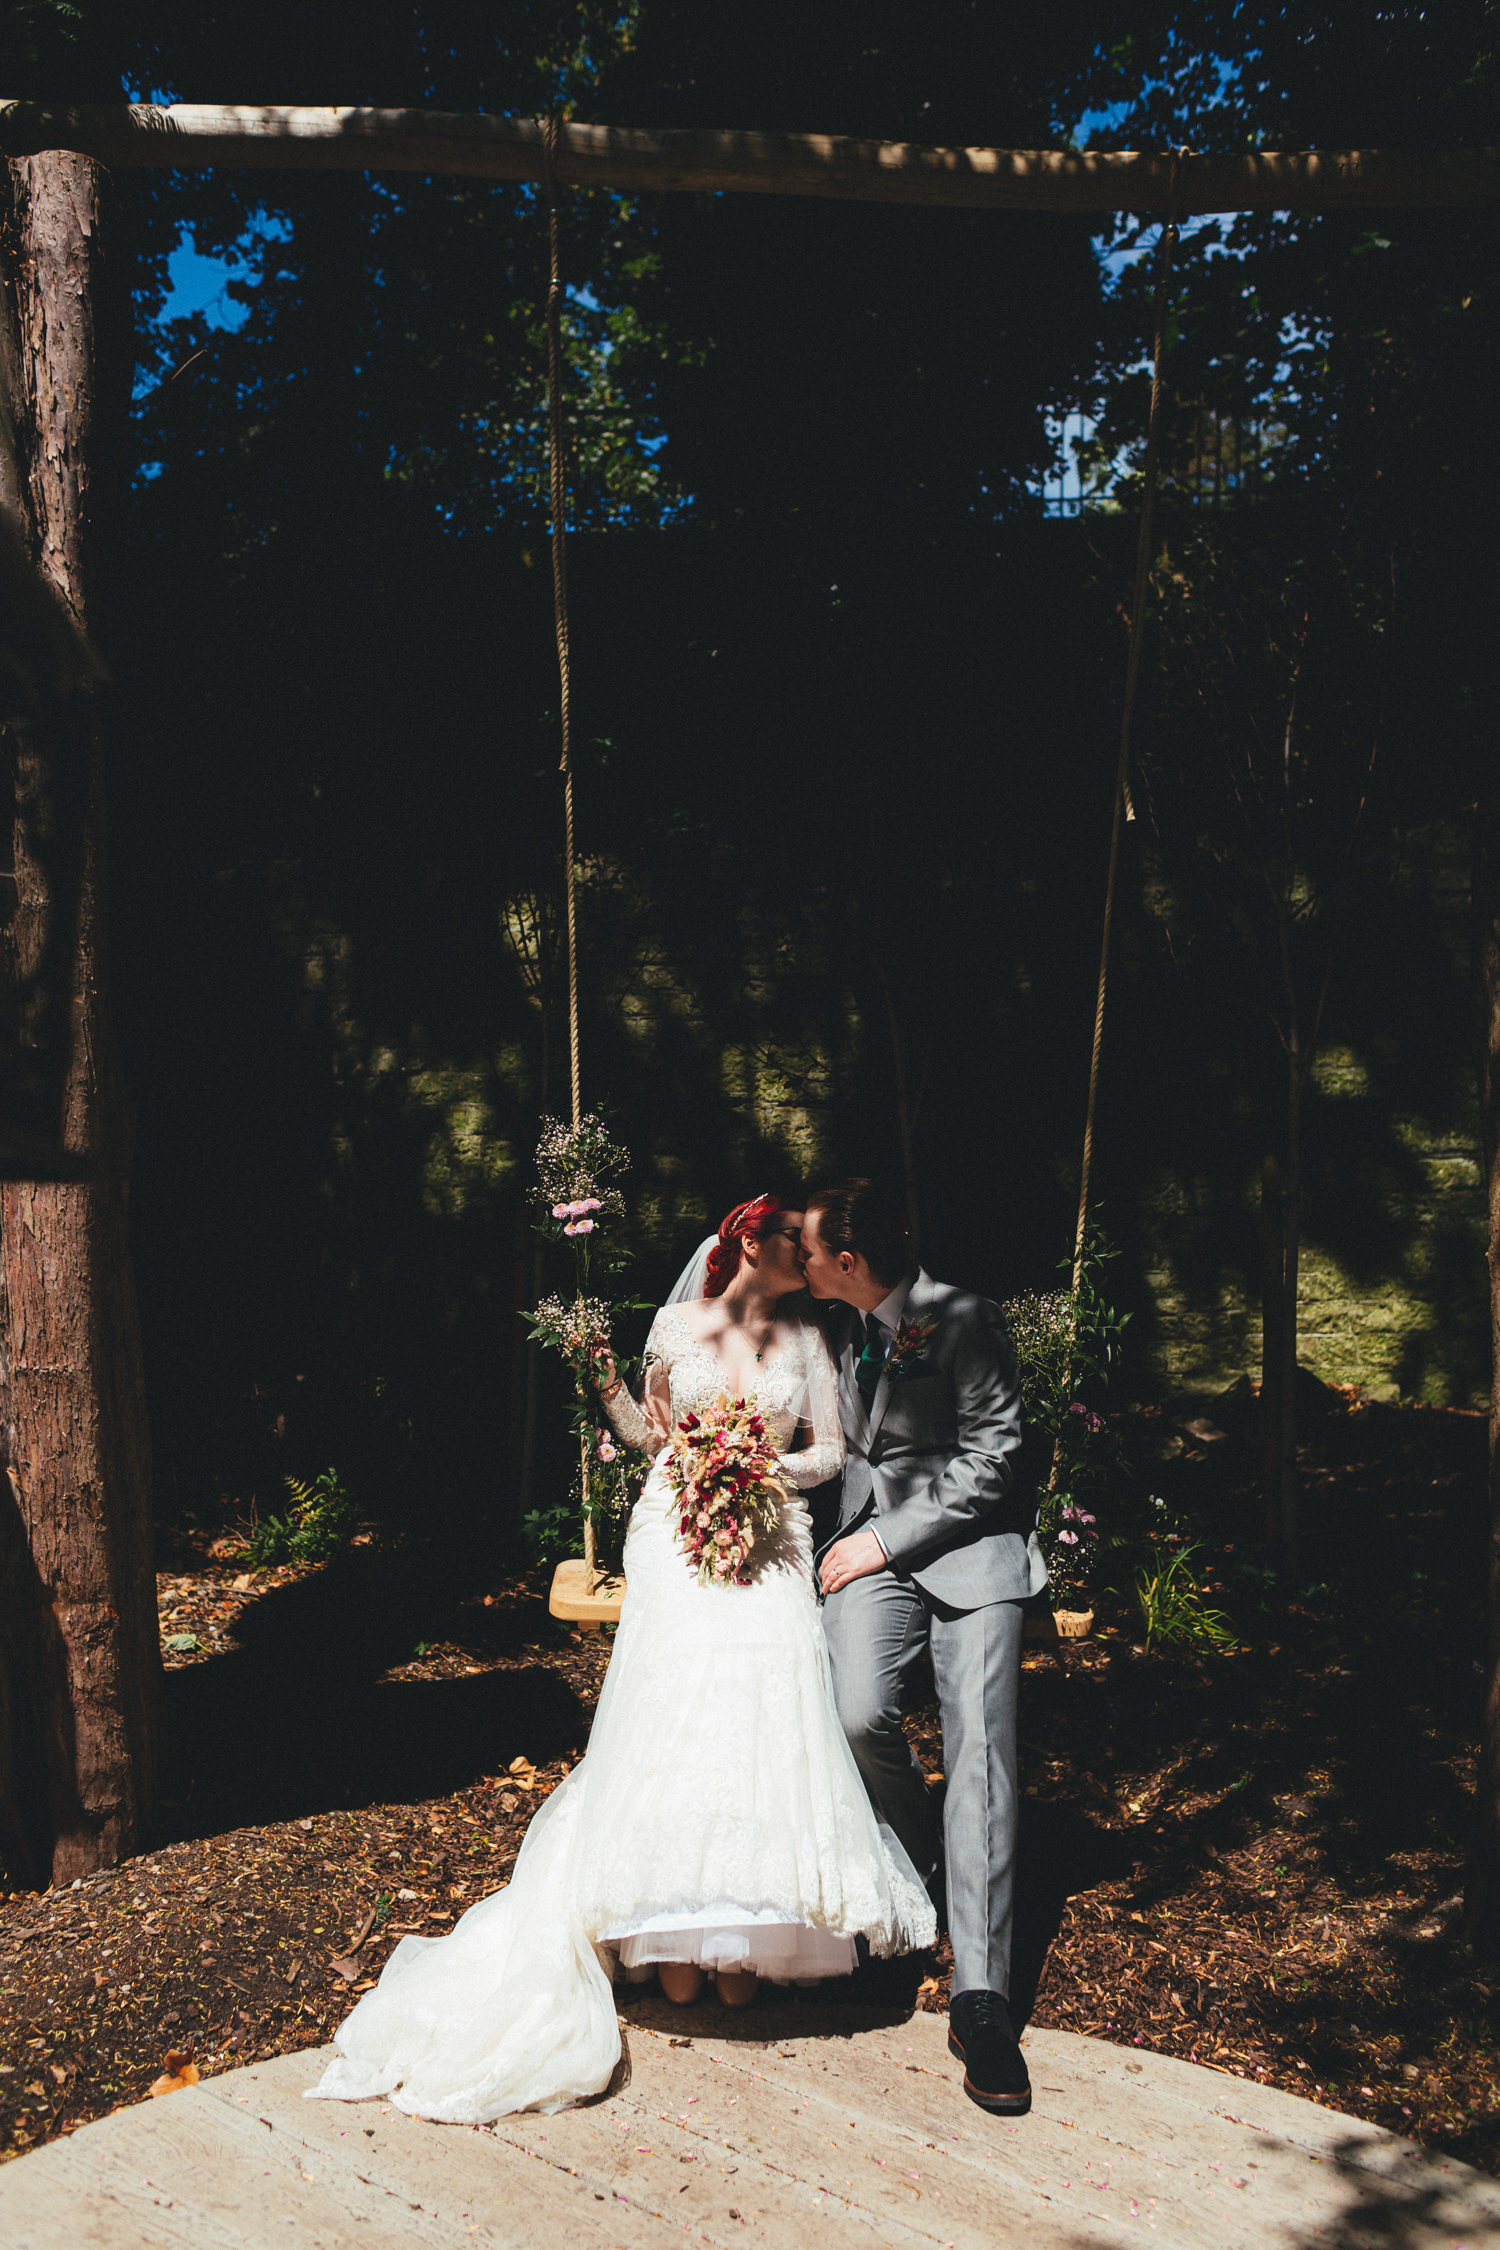 quirky woodland wedding photography, woodland wedding, woodland wedding photographer, woodland wedding photography, wild woodland wedding